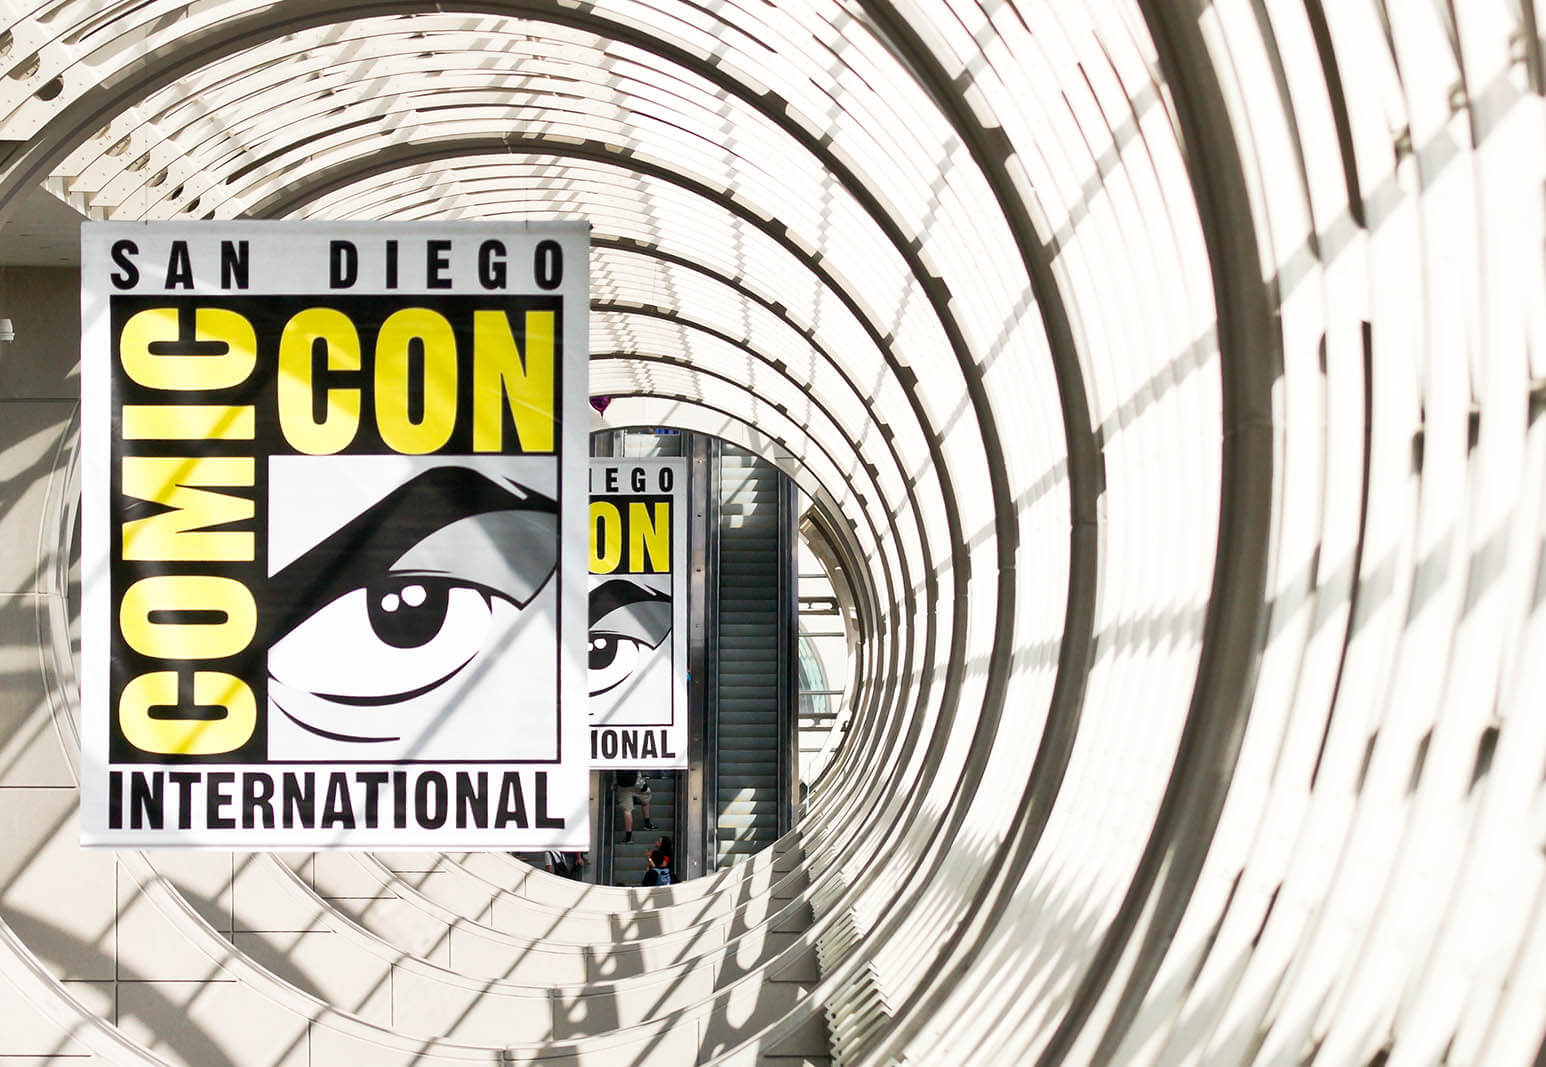 Get ready for Comic-Con 2018. If you already have tickets, here are some of the things you can expect to see there.